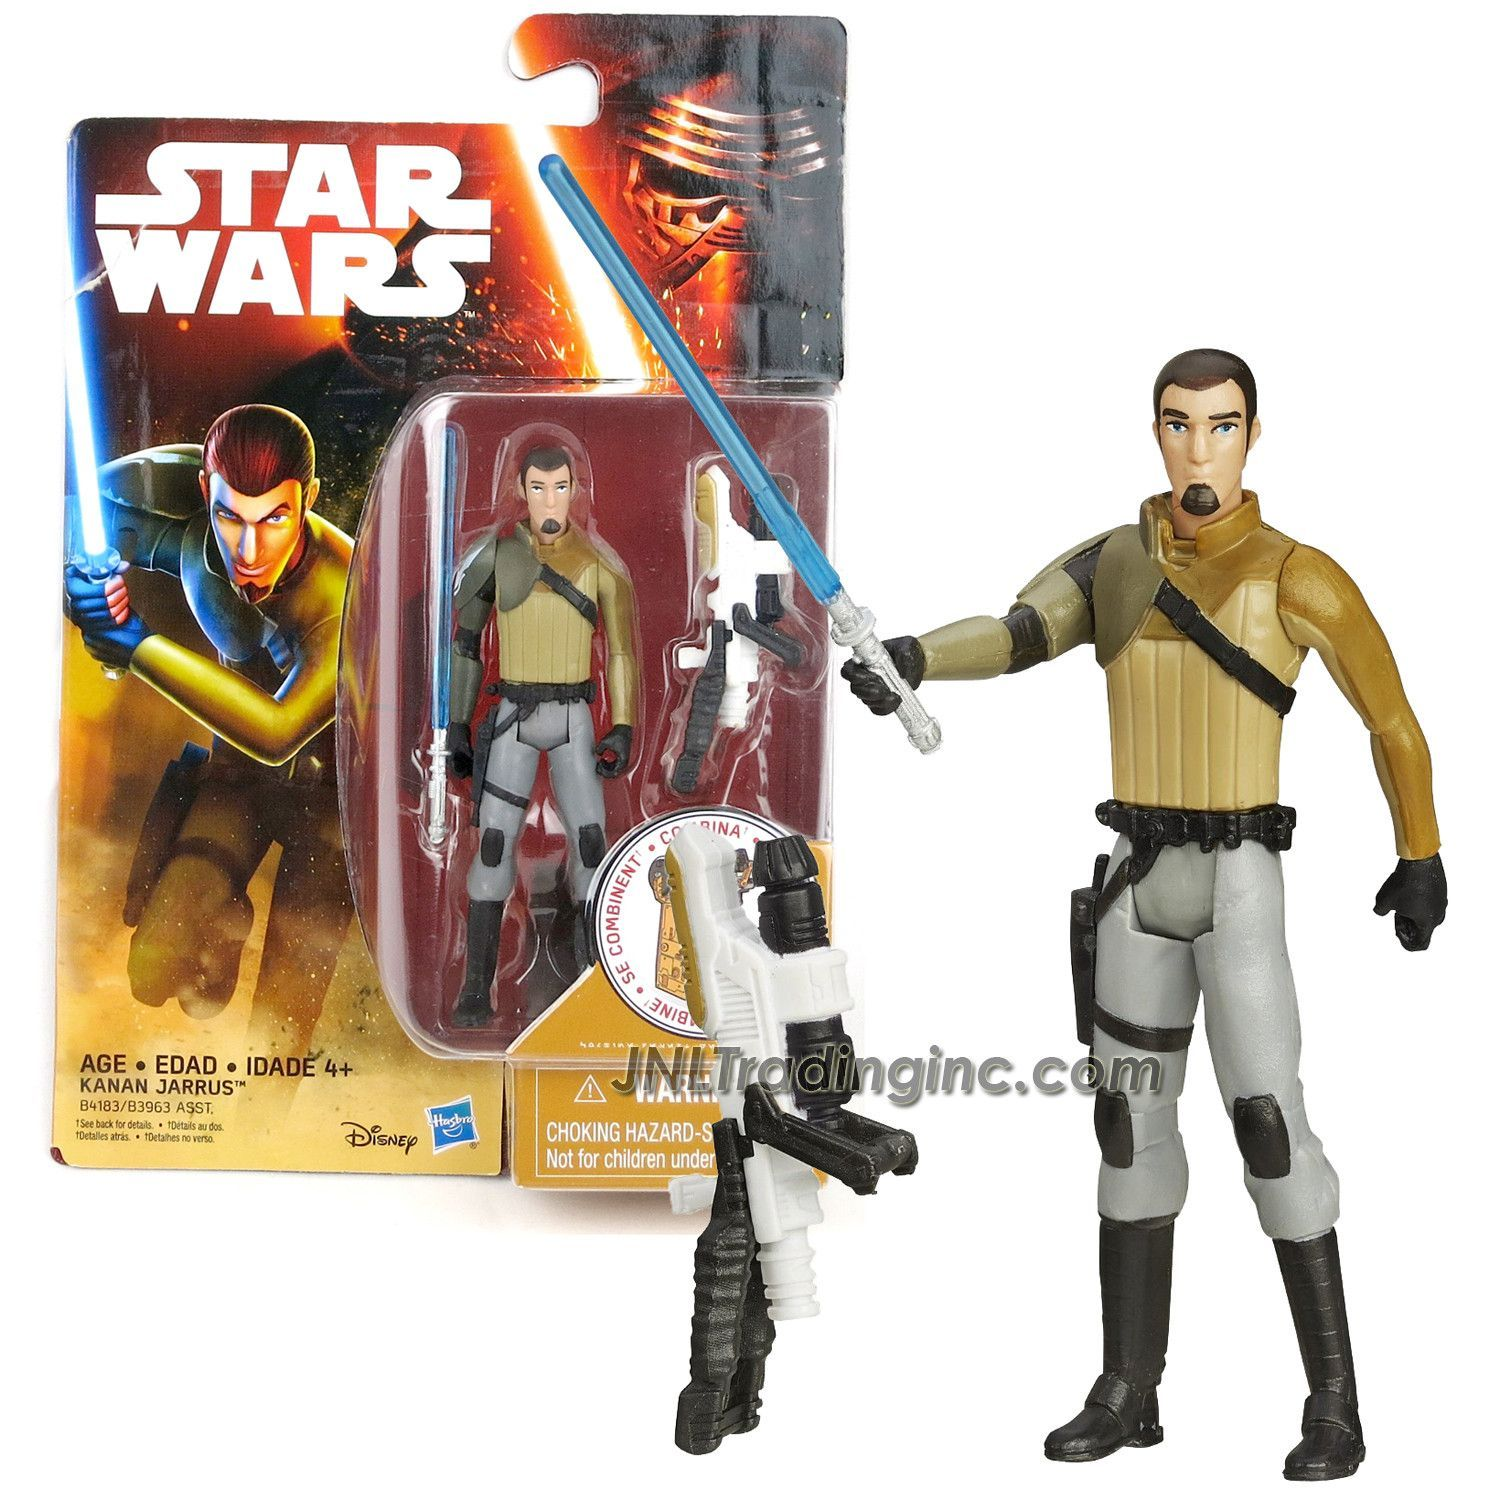 "Star Wars Rebels Series 4"" Tall Figure - KANAN JARRUS with Blue Lightsaber and Build A Weapon Part #2"